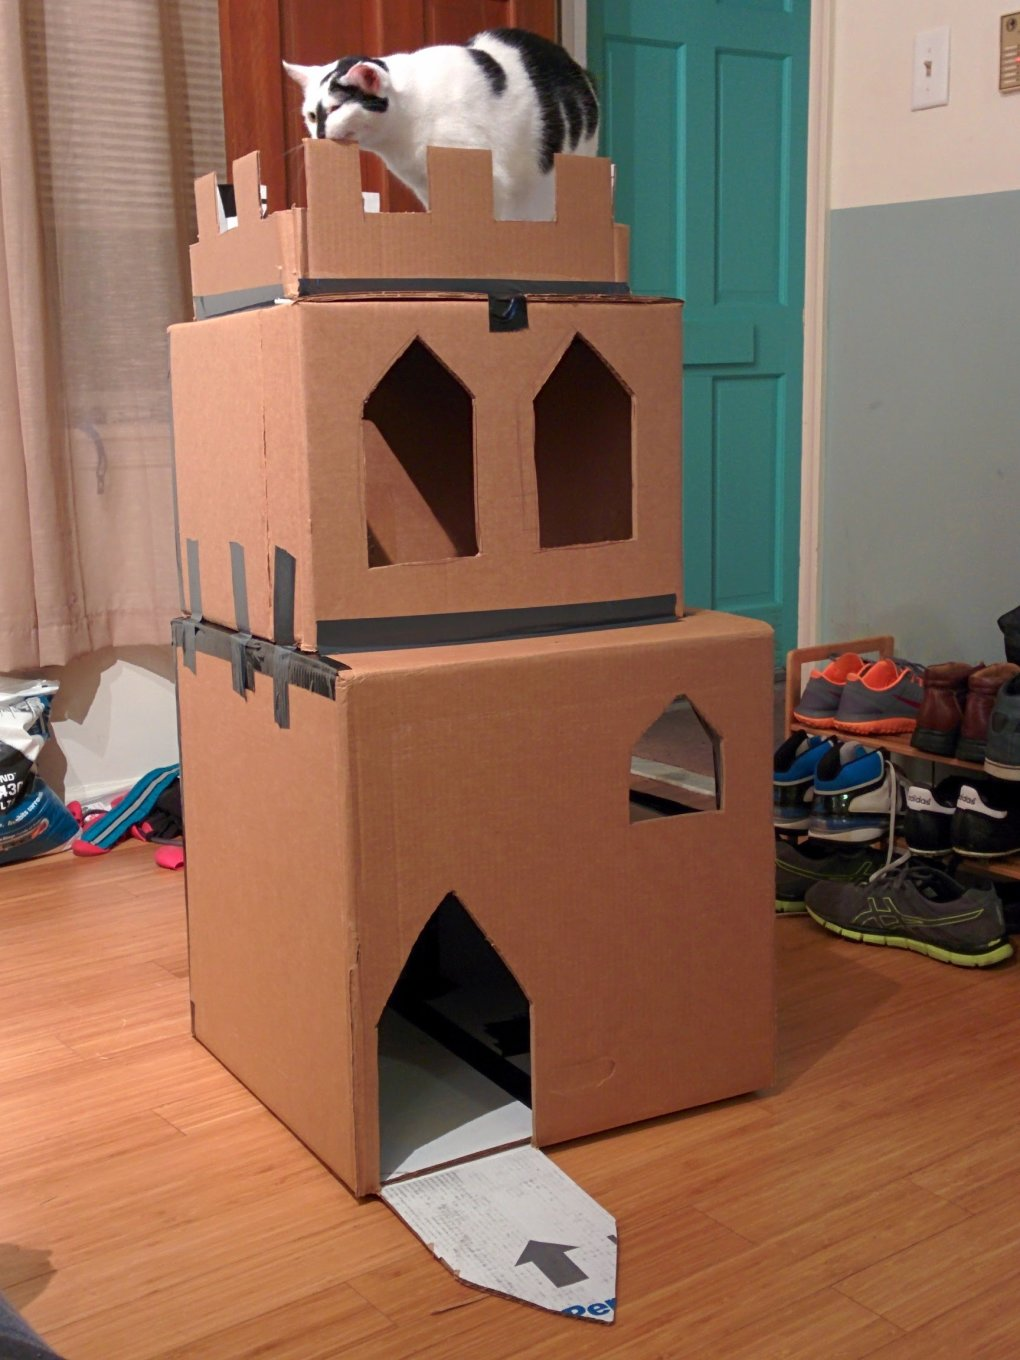 e24xqa9 - why don't we build cardboard castle to our cats? this is how to do it.